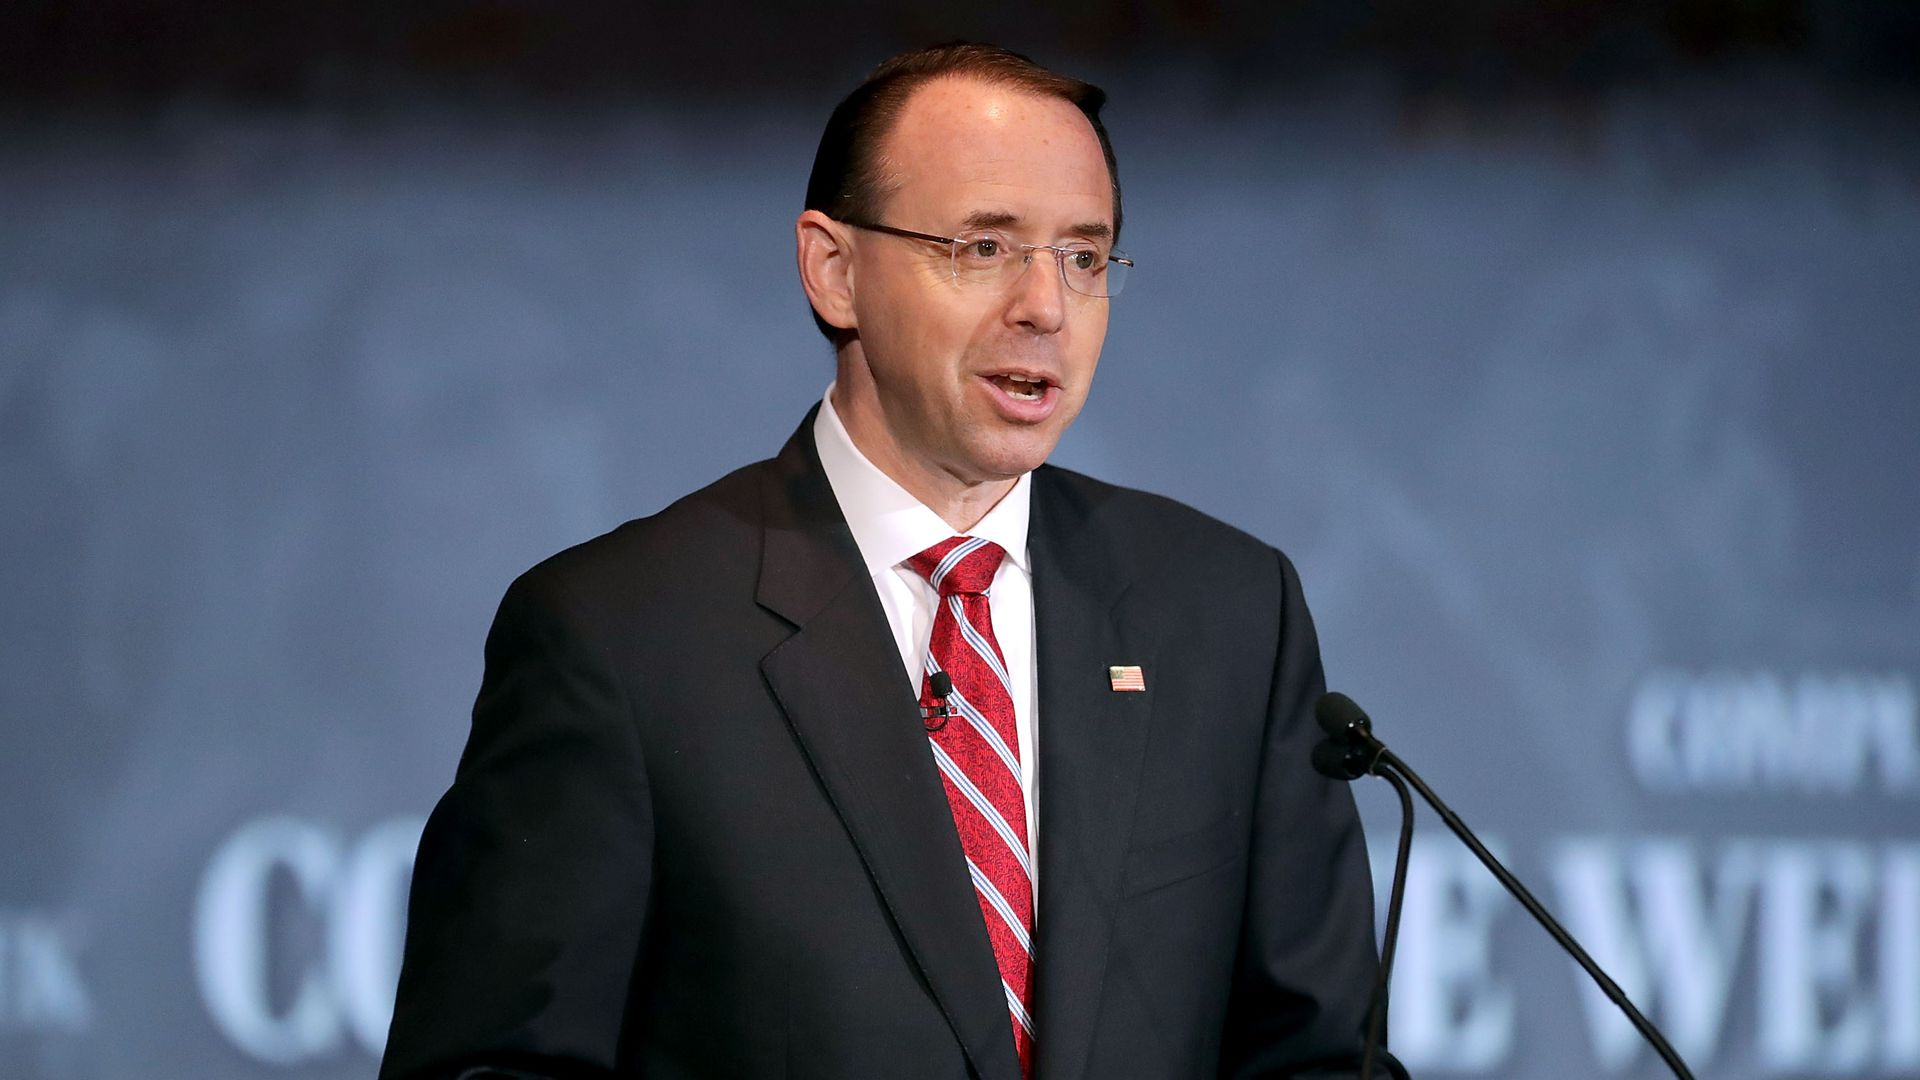 Rod Rosenstein speaks from behind a podium